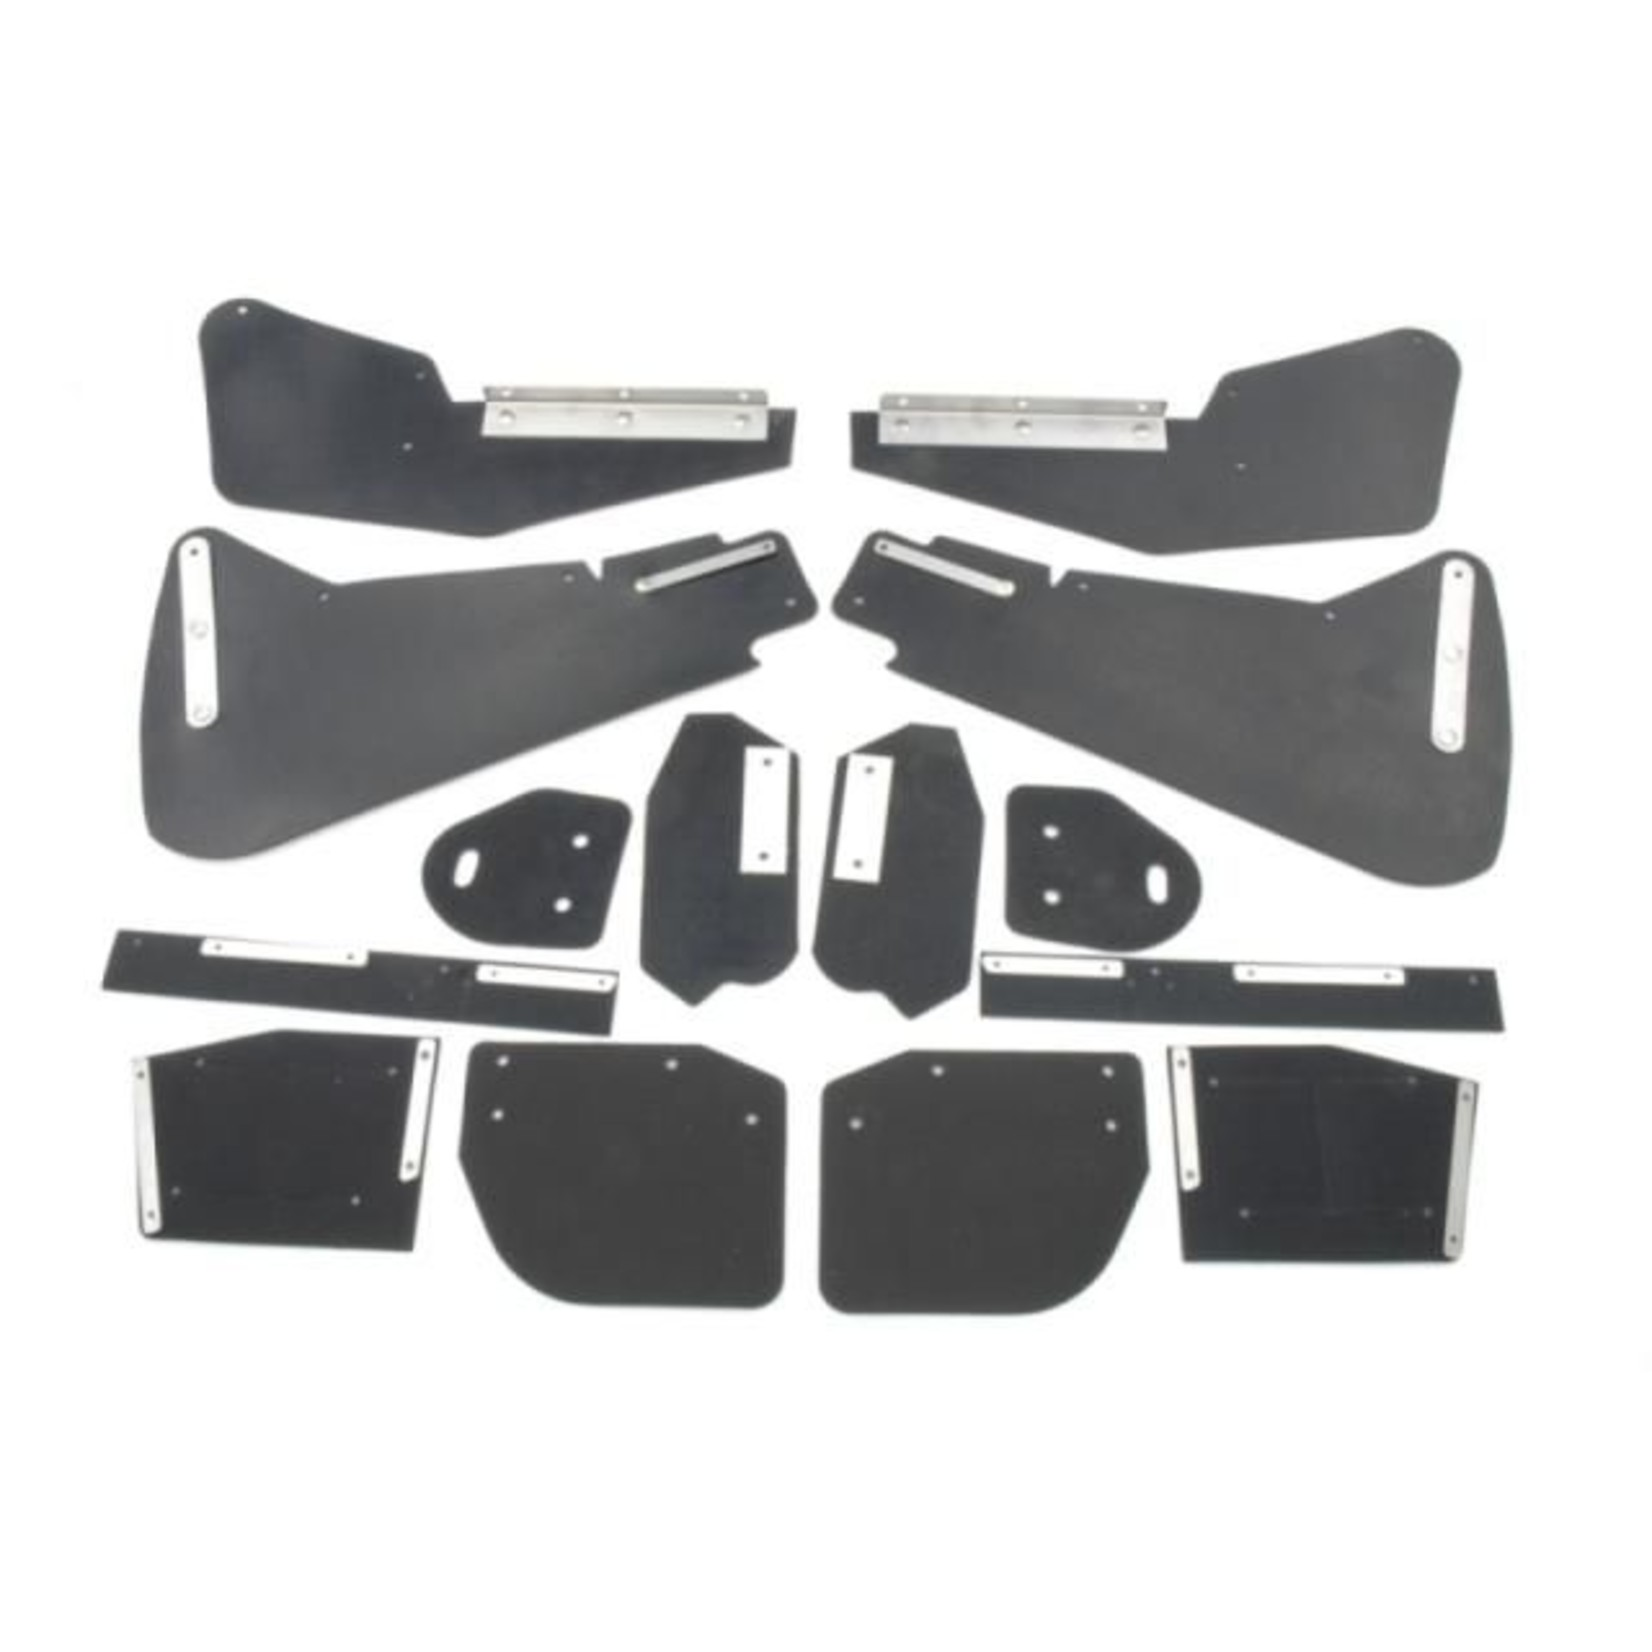 Mud flap kit berline